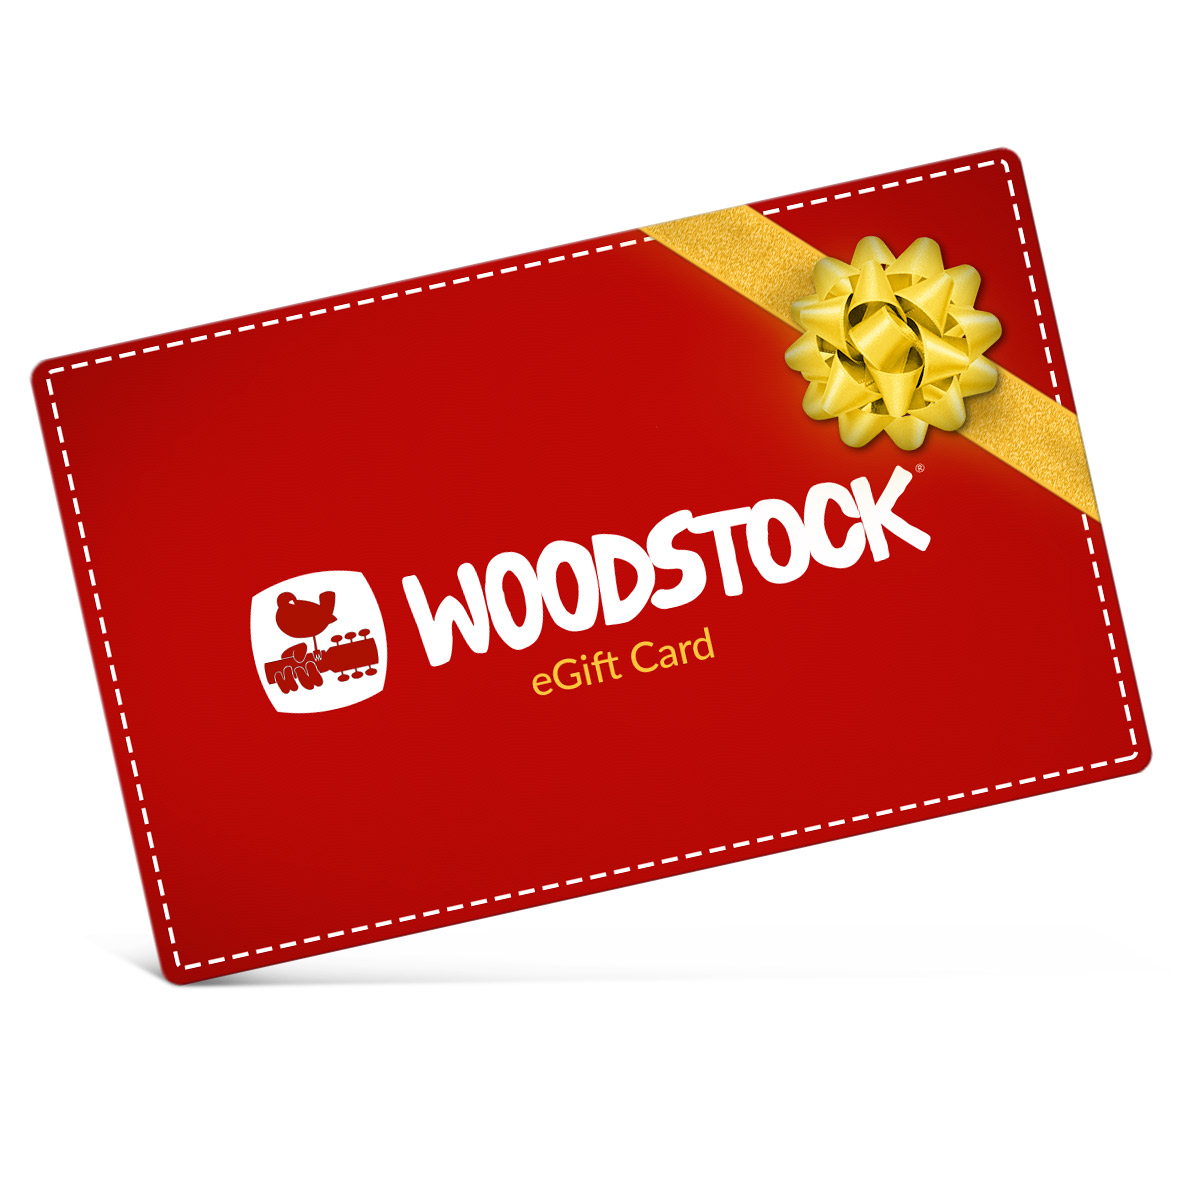 Woodstock Electronic Gift Certificate